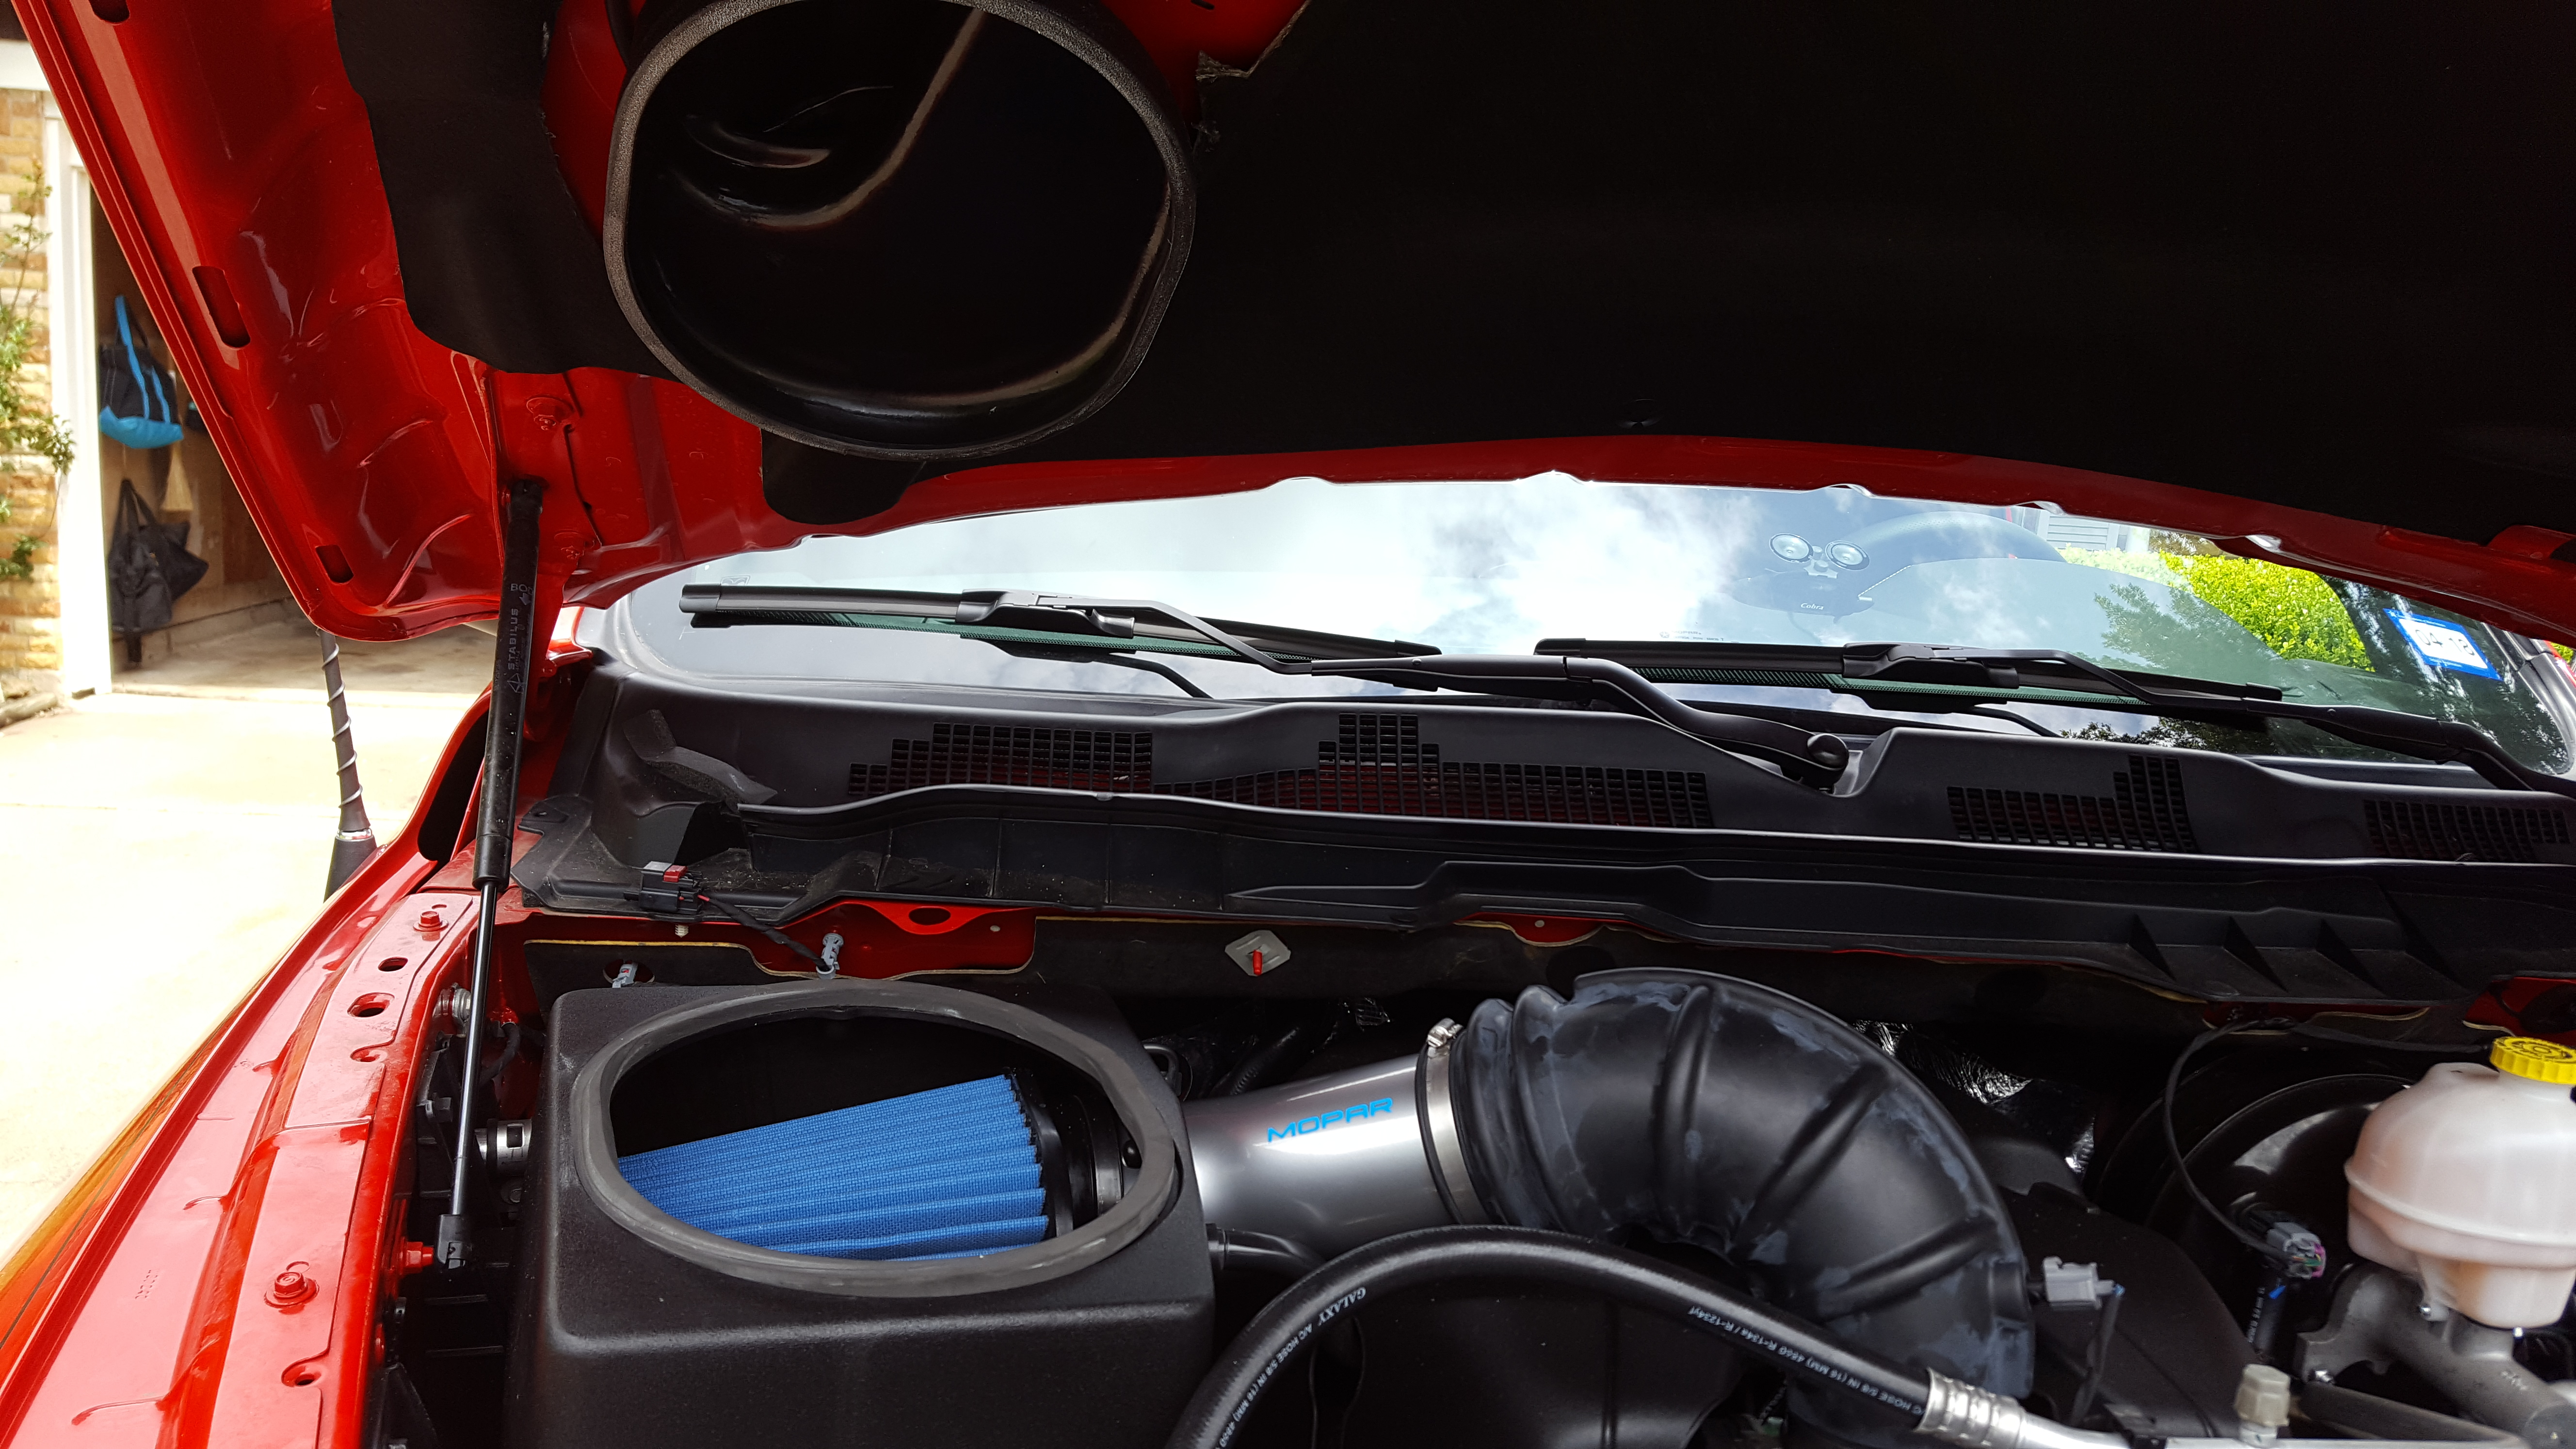 Air intake on the hood of a car - a luxury or a necessity 58